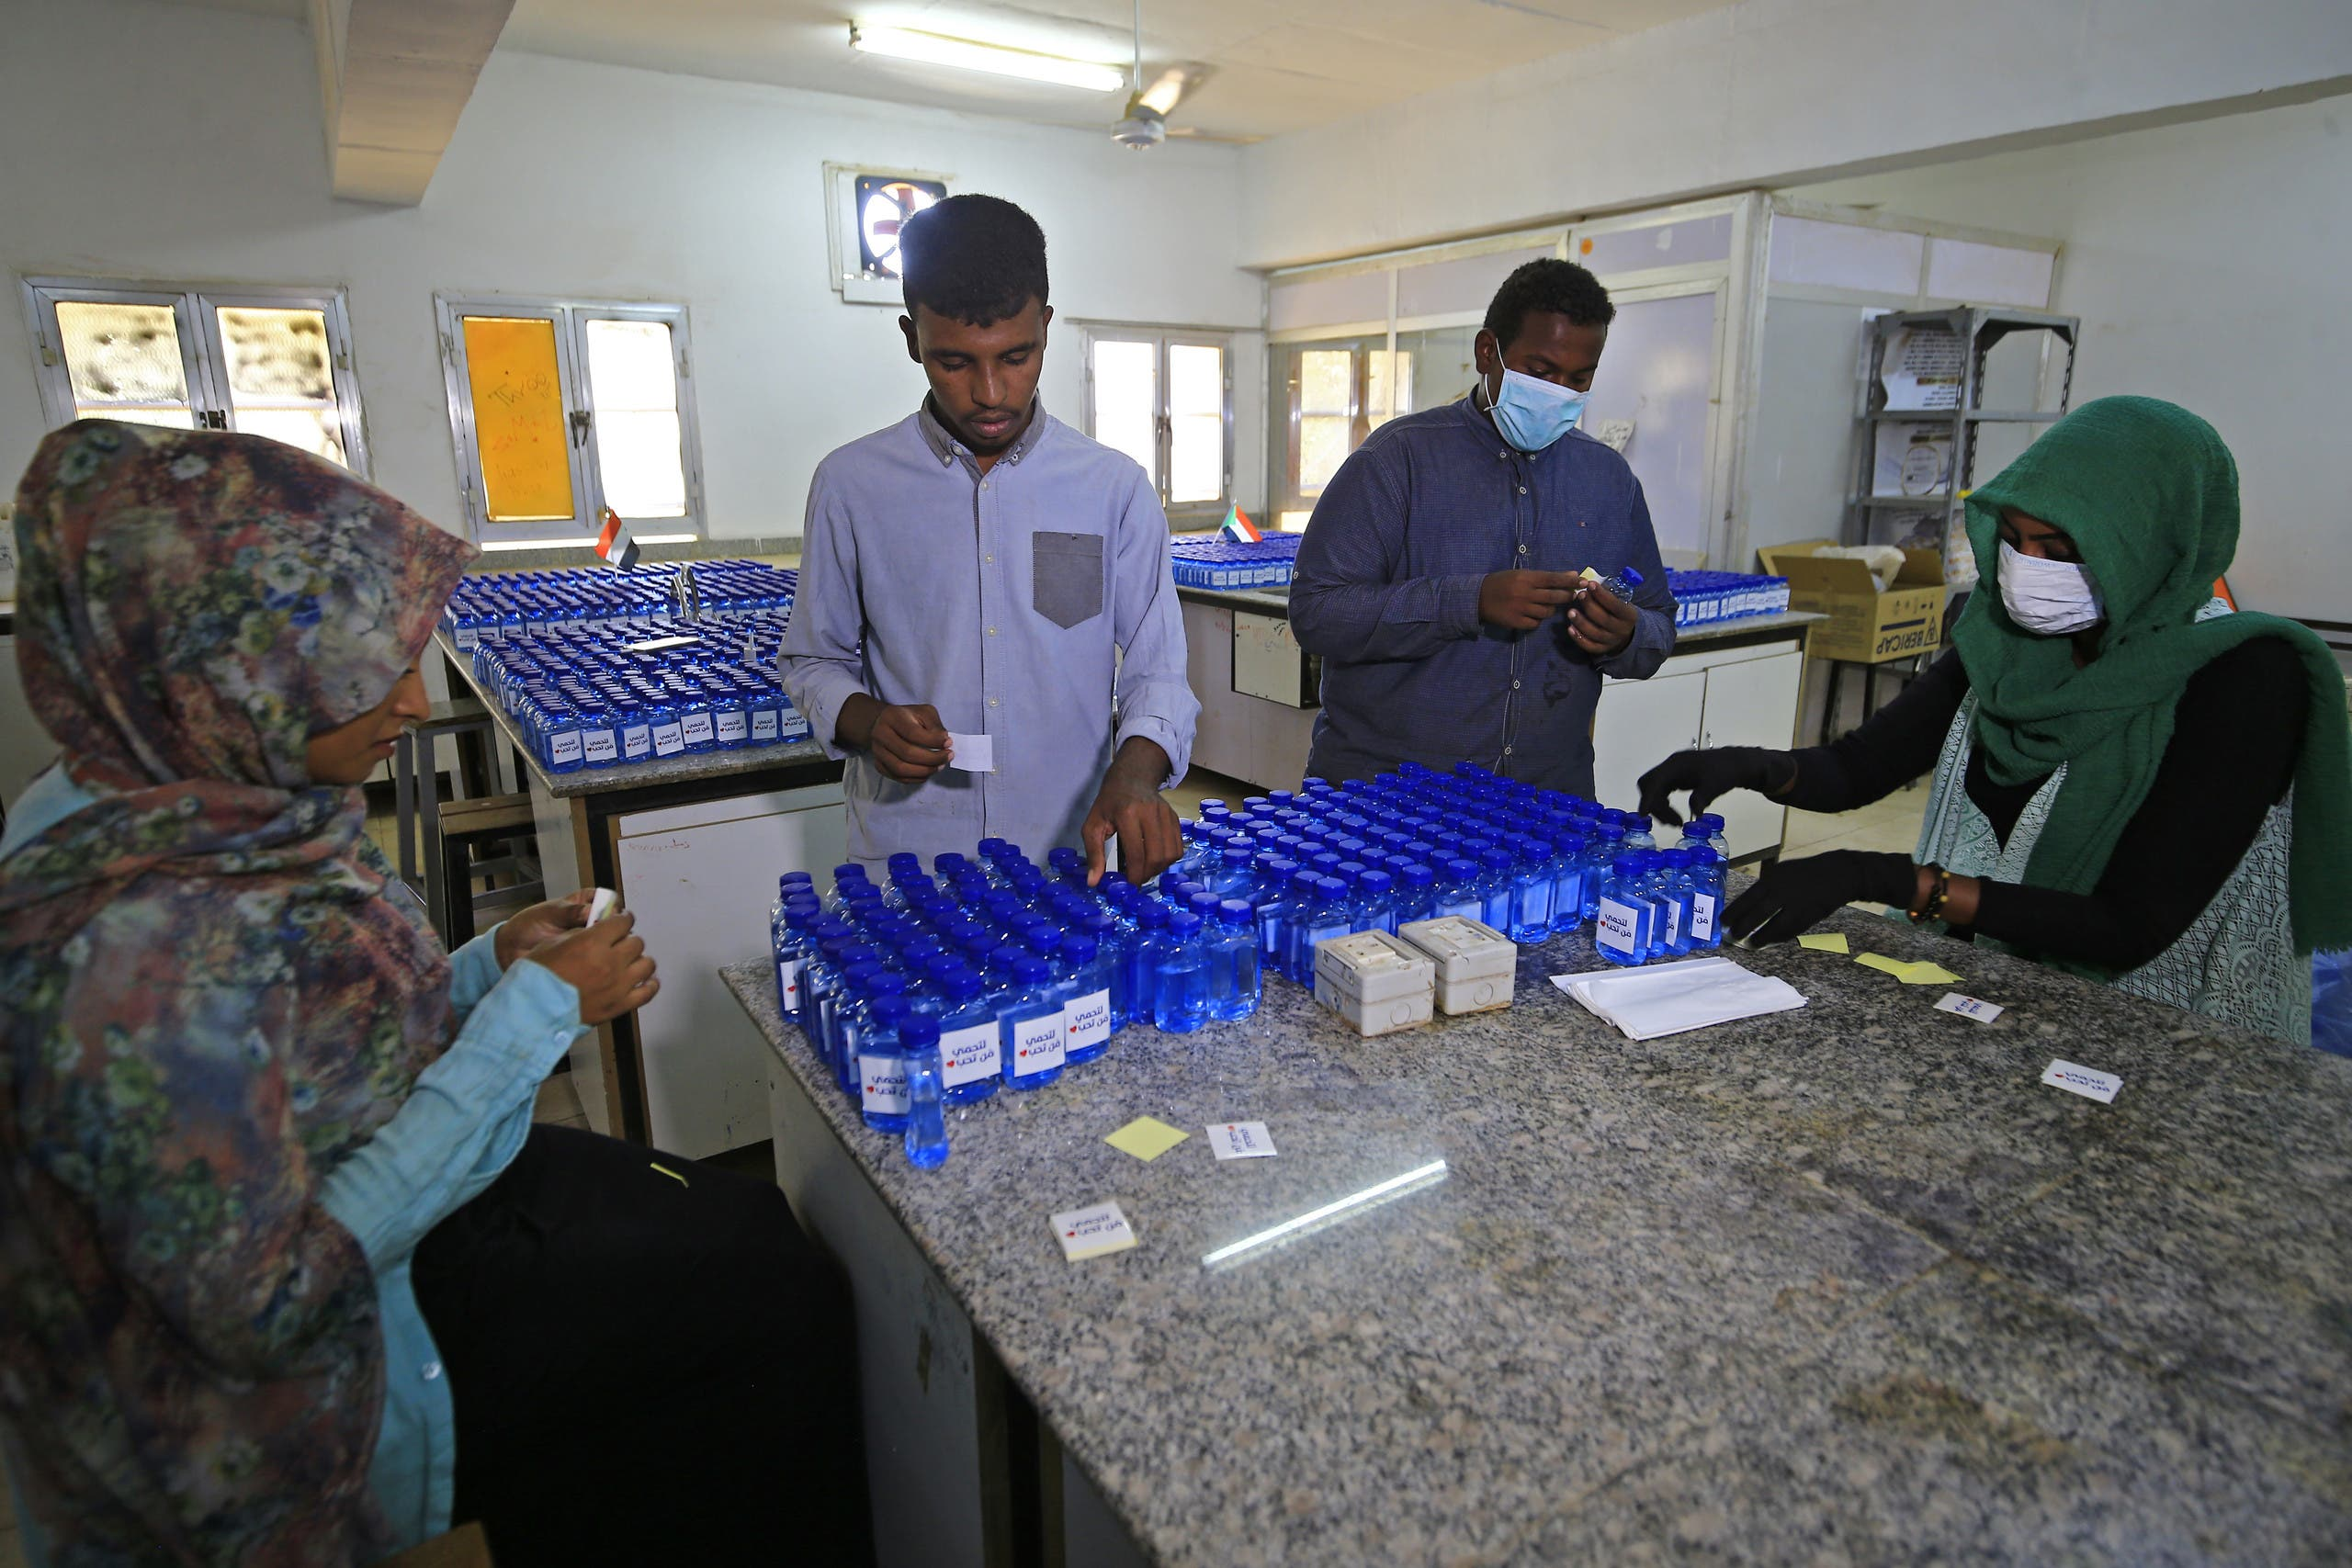 Sudanese medical laboratory students prepare sterilisers to combat the spread of the coronavirus COVID-19 in Khartoum. (AFP)